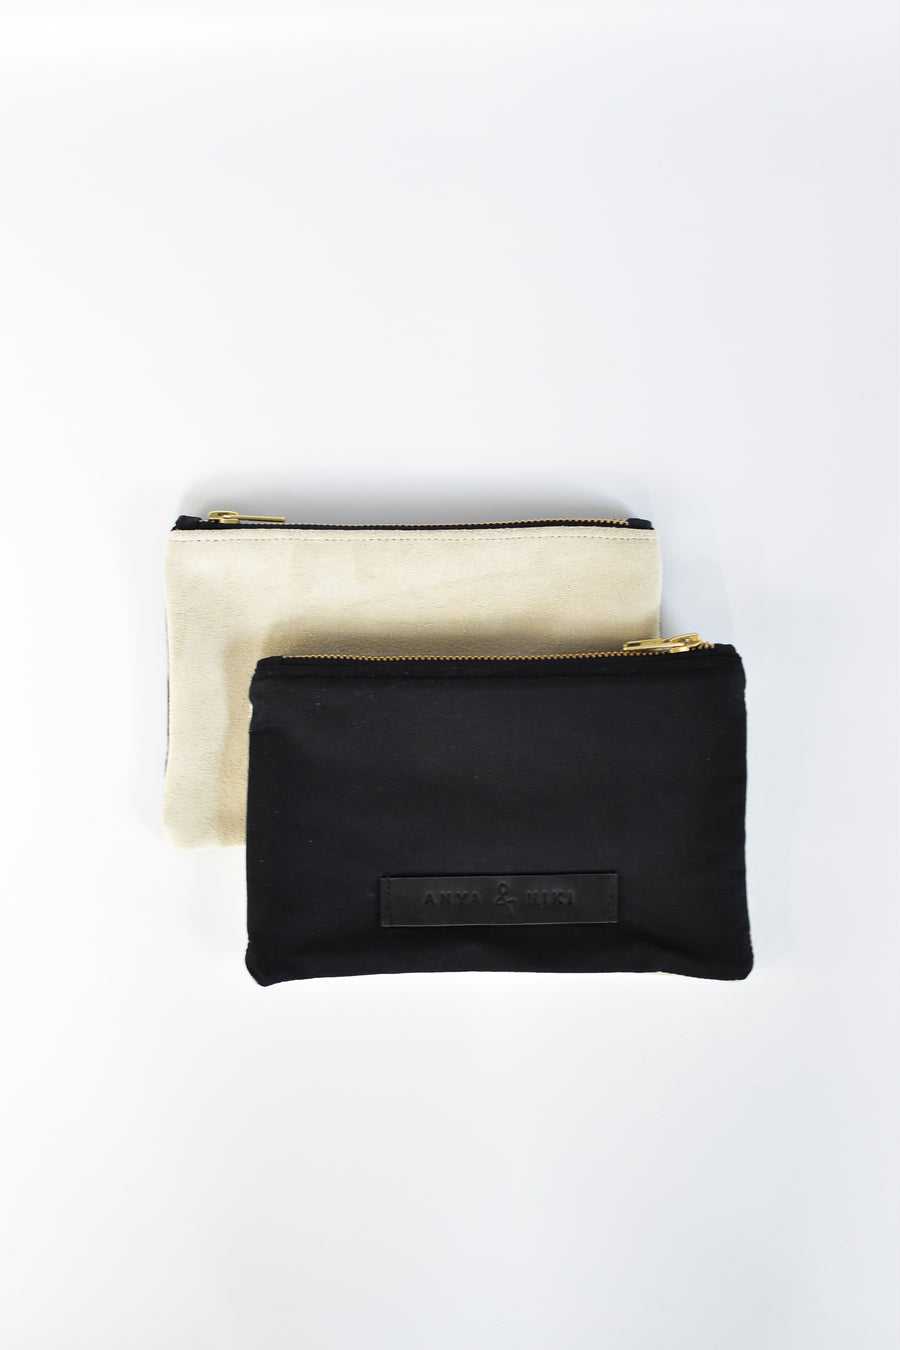 Black cotton canvas and off-white suede small pouch with brass zipper and leather logo label.